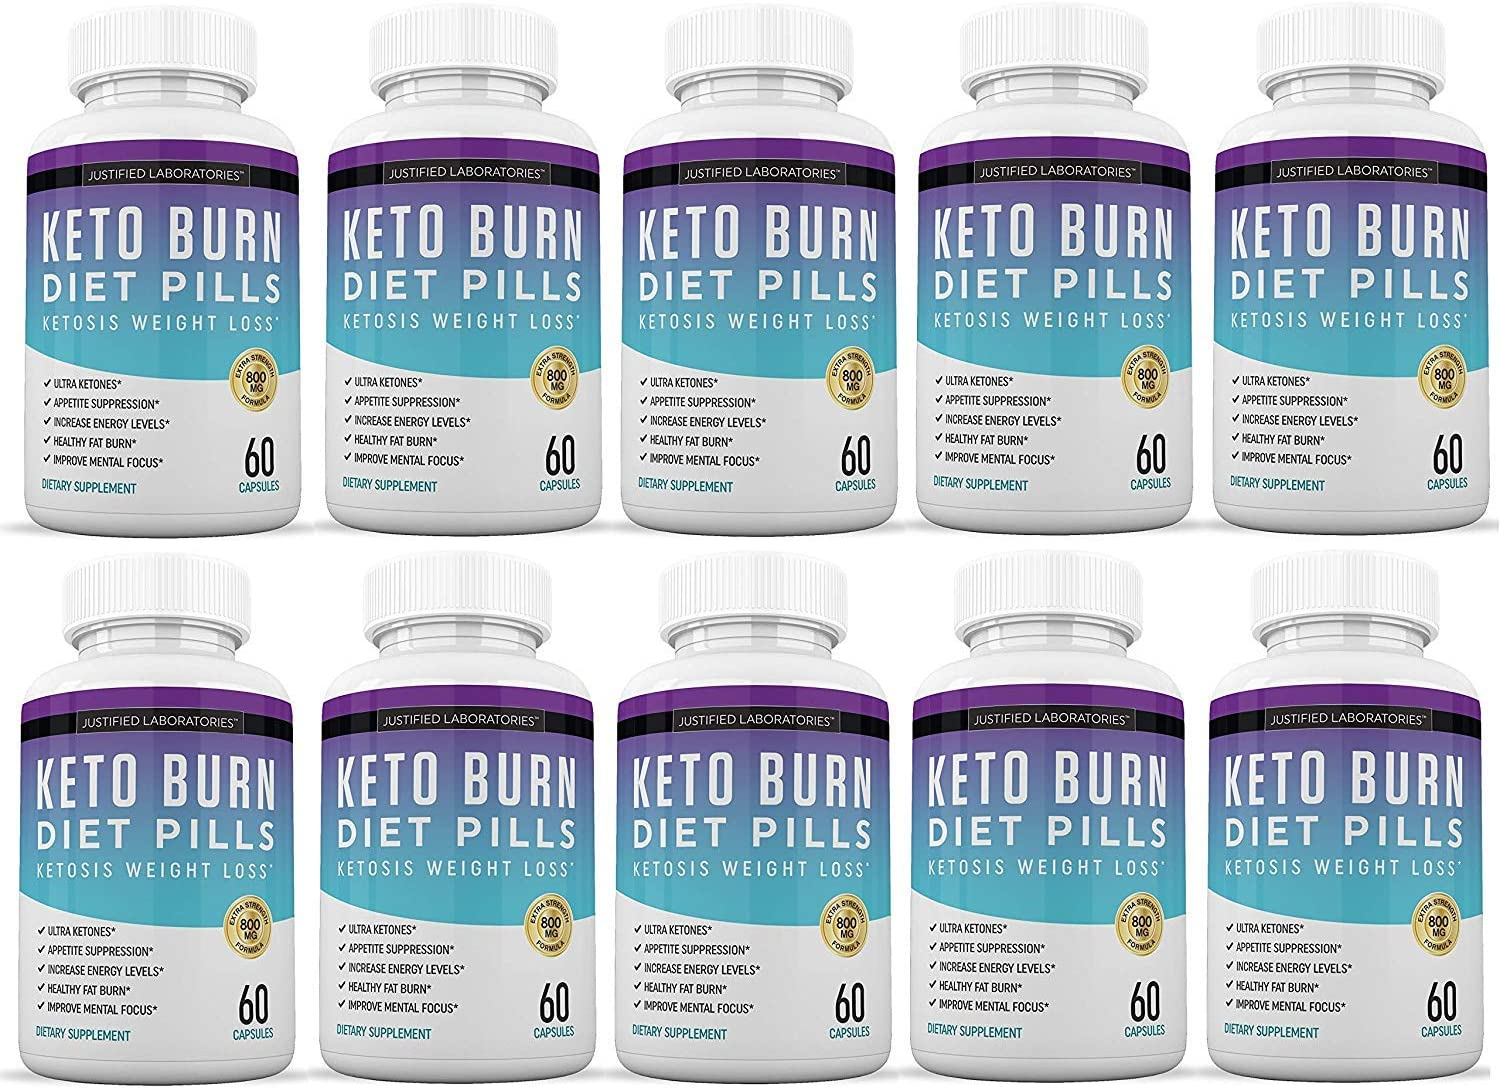 Keto Diet Pills Burn Shred BHB Salts Advanced Ketogenic Supplement Exogenous Ketones Ketosis Weight Loss Fat Burner Boost Energy Metabolism Men Women 60 Capsules 10 Bottles